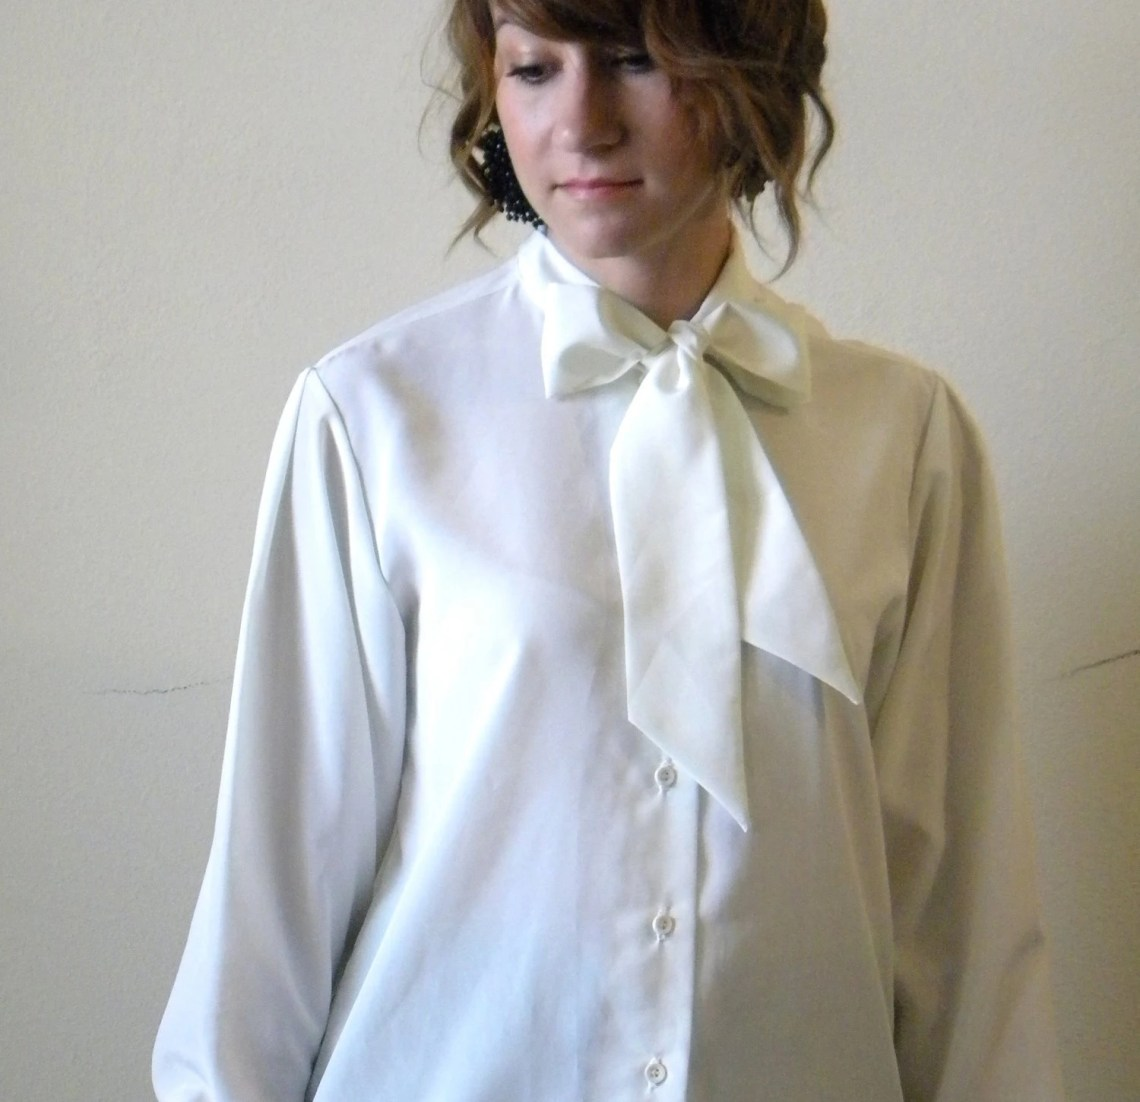 il fullxfull.247220215 Blouse With Bow Tie At The Neck